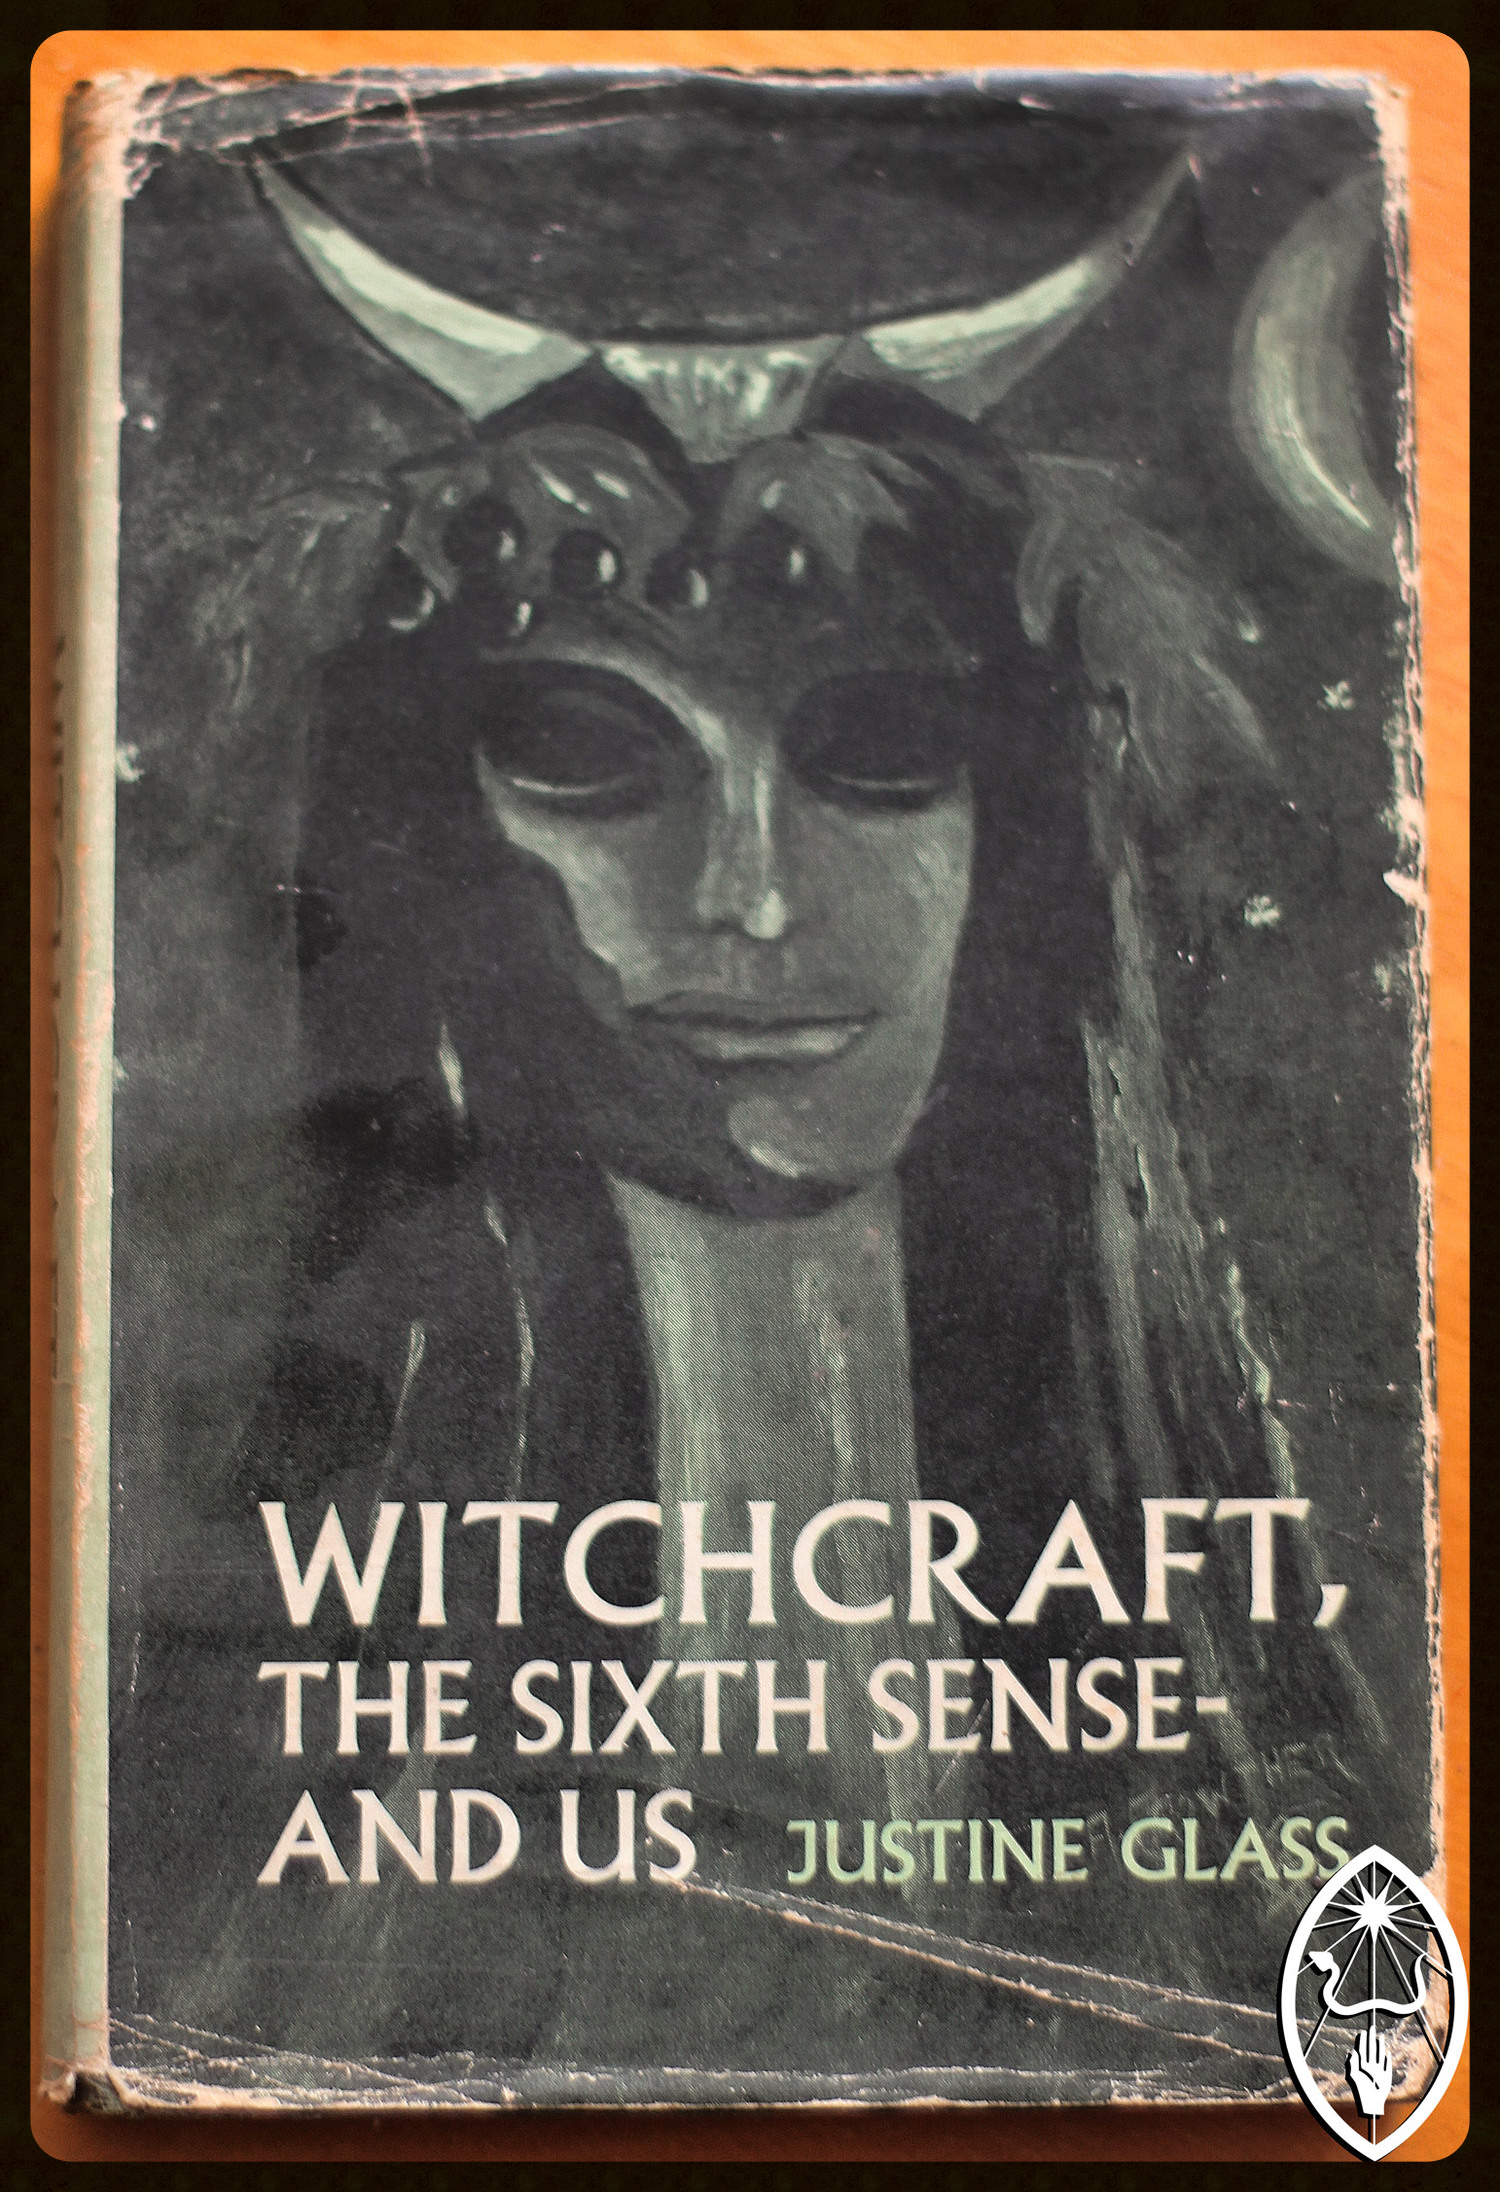 Witchcraft, The Sixth Sense - and Us, by Justine Glass. 1965, Neville Spearman.